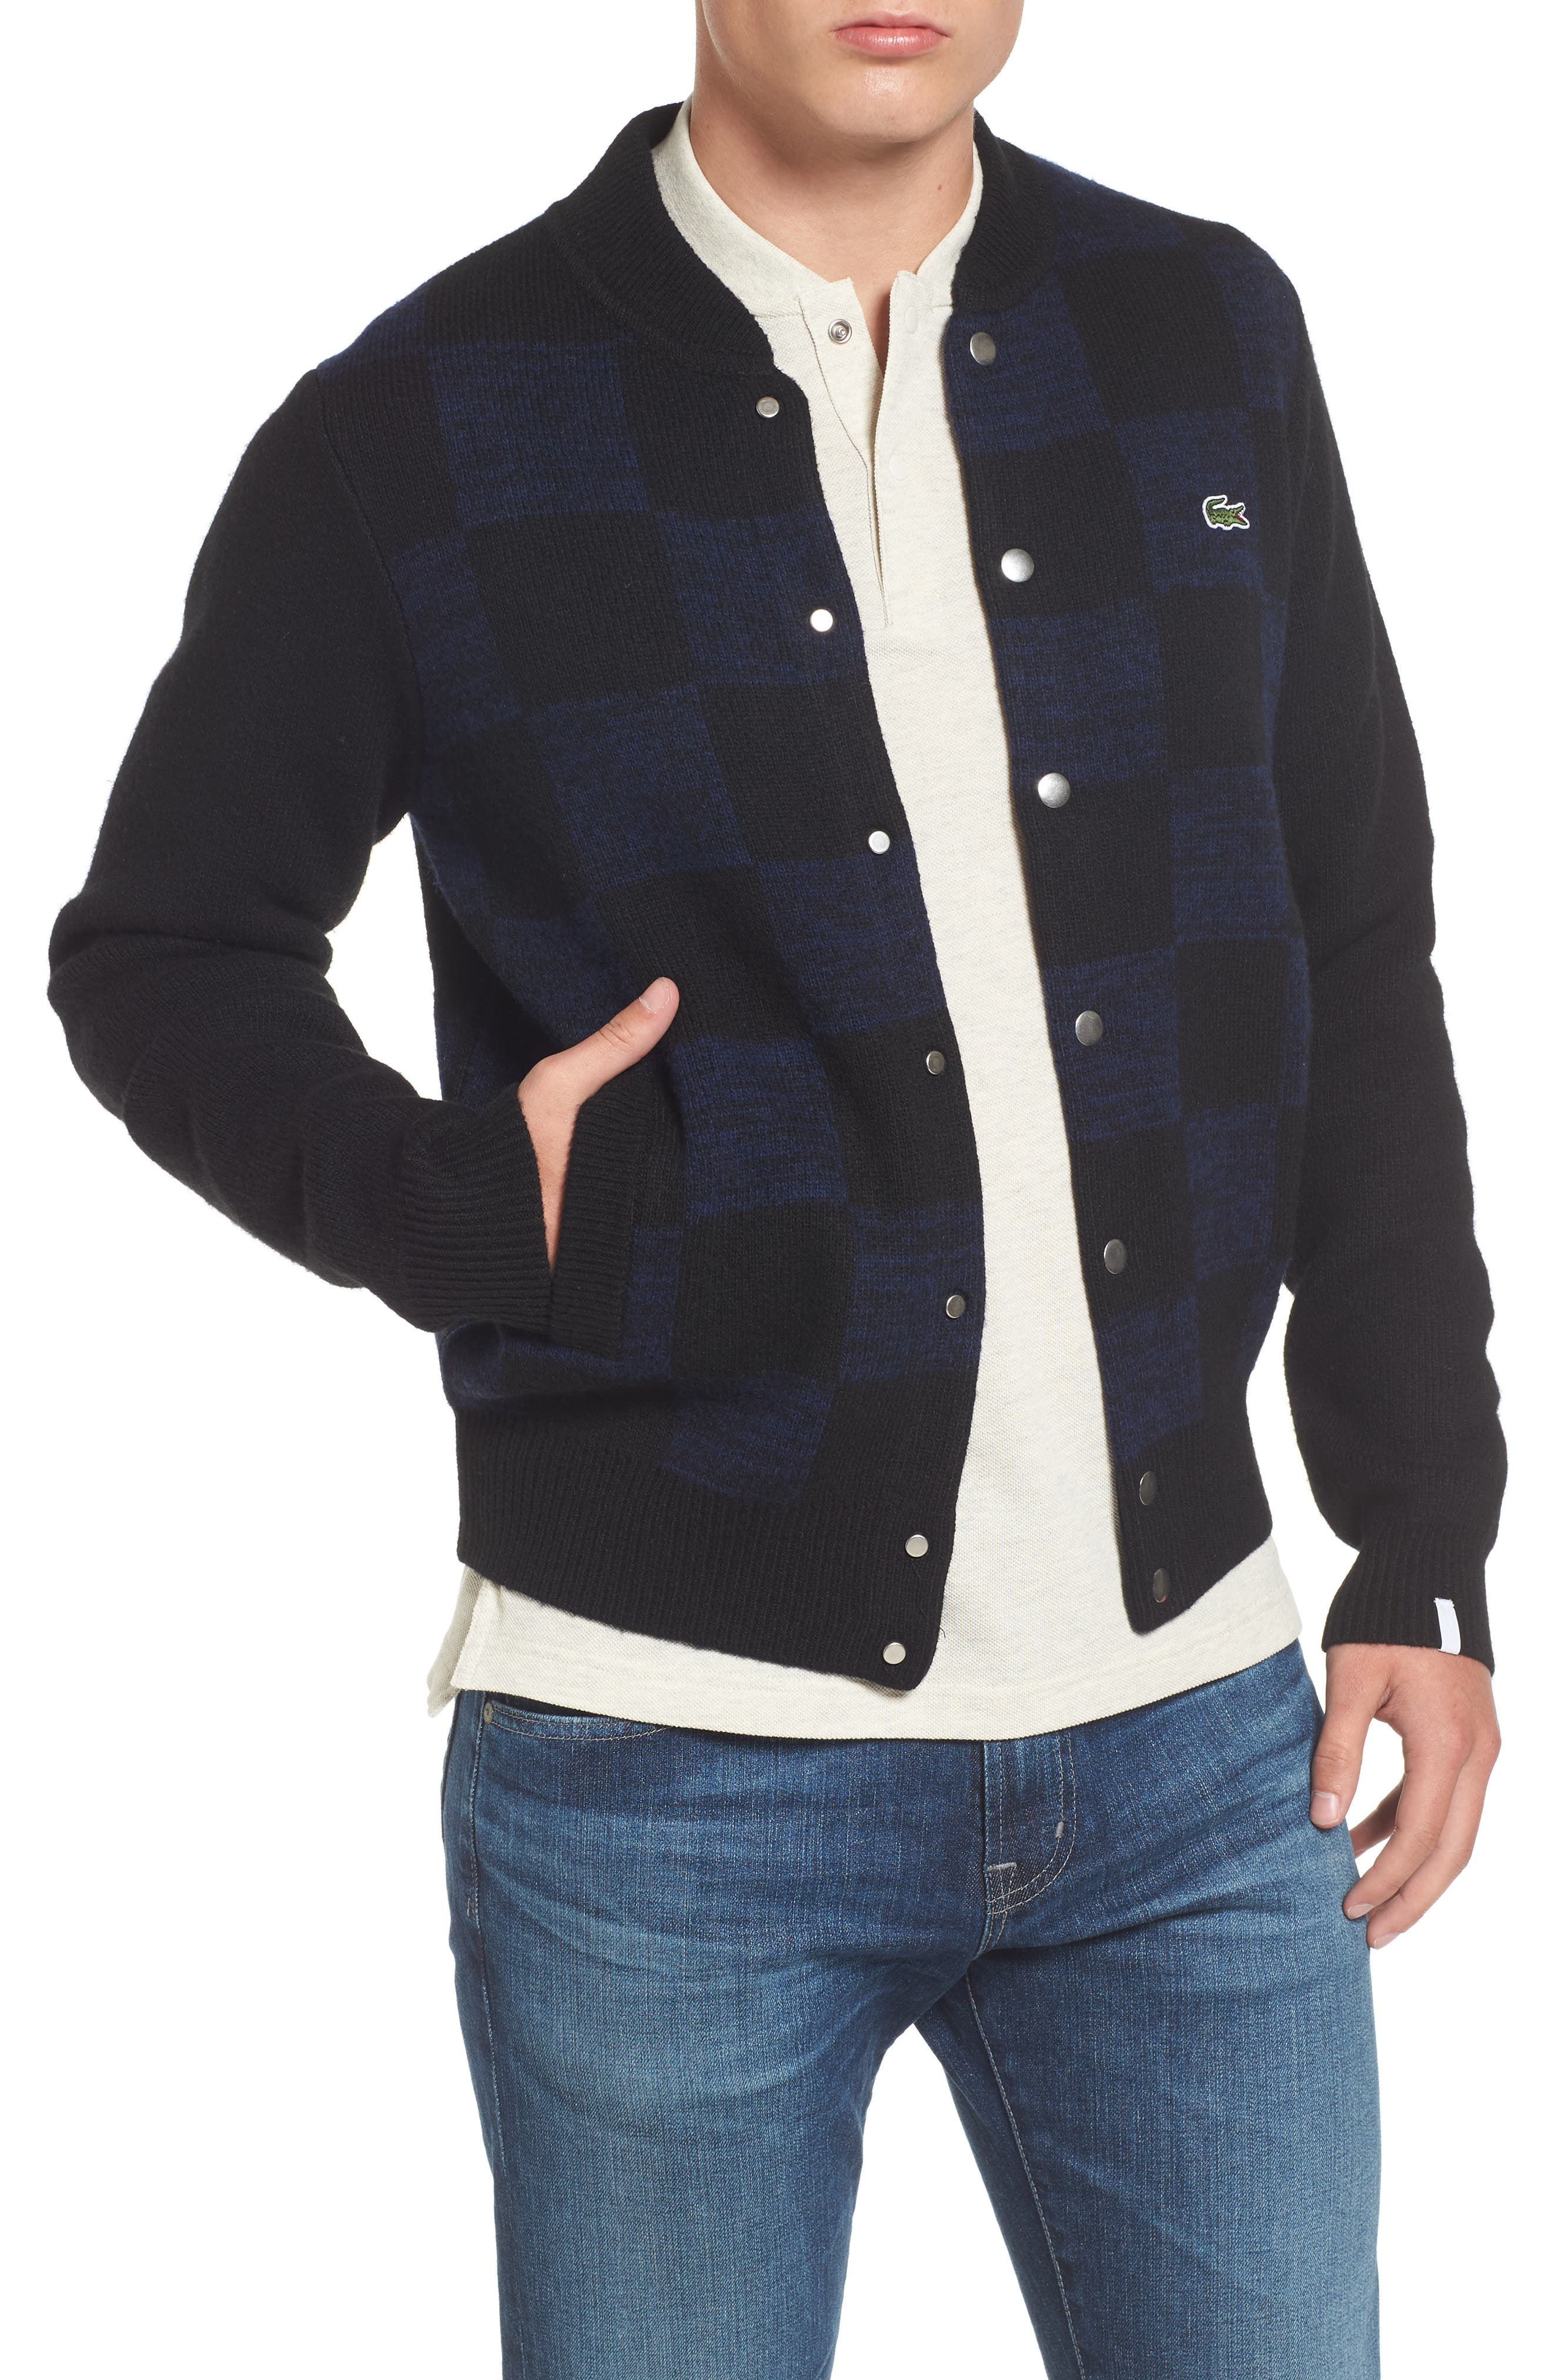 Main Image - Lacoste Double Face Check Sweater Jacket